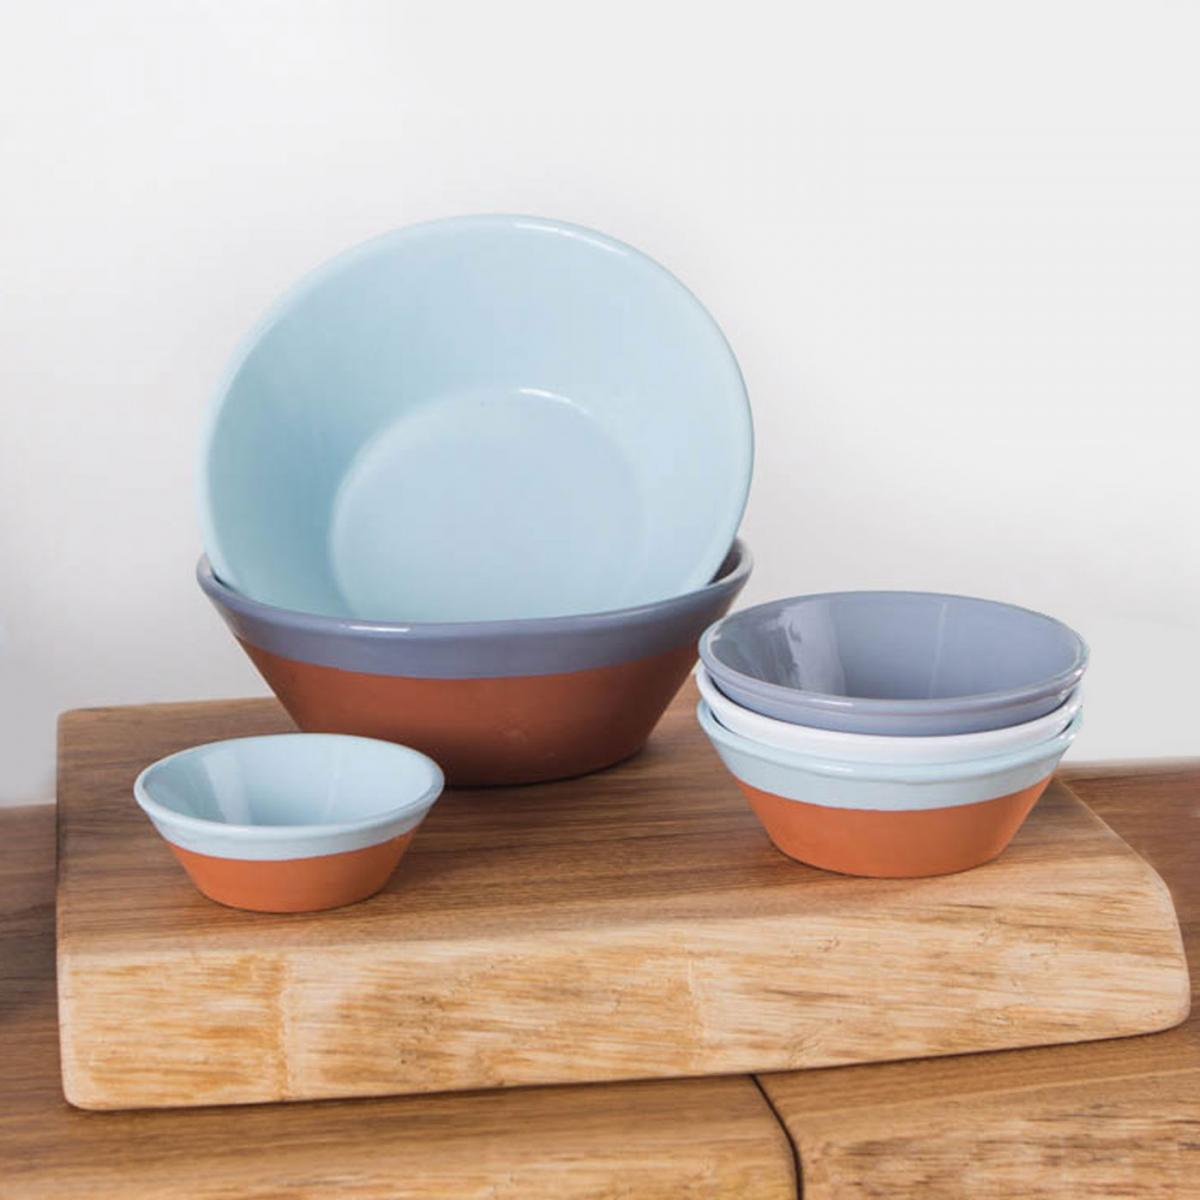 Clifton Nurseries Verano Spanish Ceramics Rustic Pastel - Bowl Set & Verano Spanish Ceramics Rustic Pastel Side Bowl